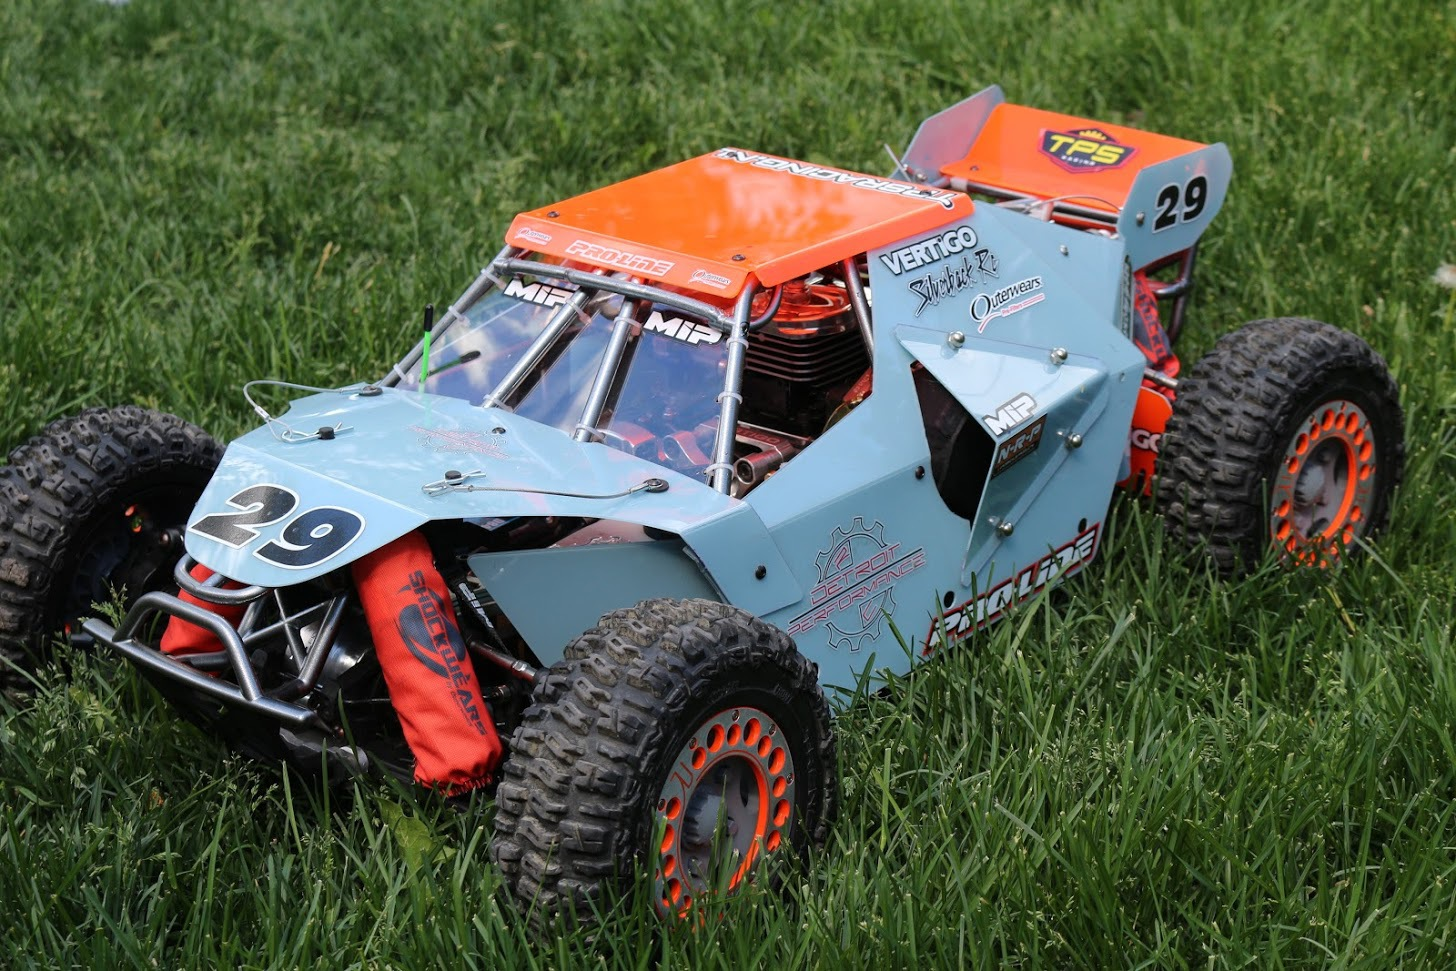 Detroit Performance RC racer Alan Campbell wins at Big Dirty with Red Arrow USA 34 Engine